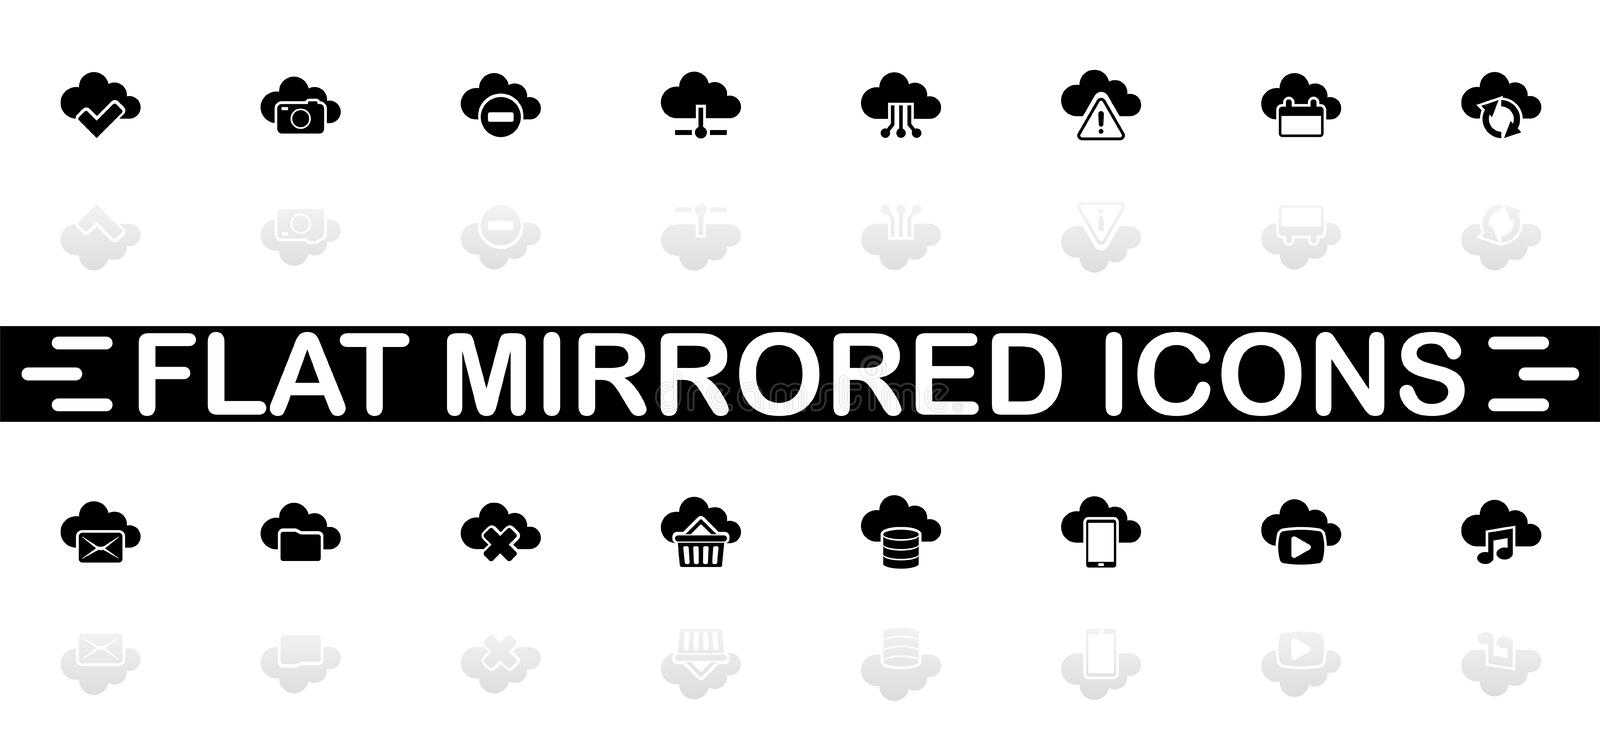 Computing Cloud - Flat Vector Icons. Computing Cloud icons - Black symbol on white background. Simple illustration. Flat Vector Icon. Mirror Reflection Shadow vector illustration